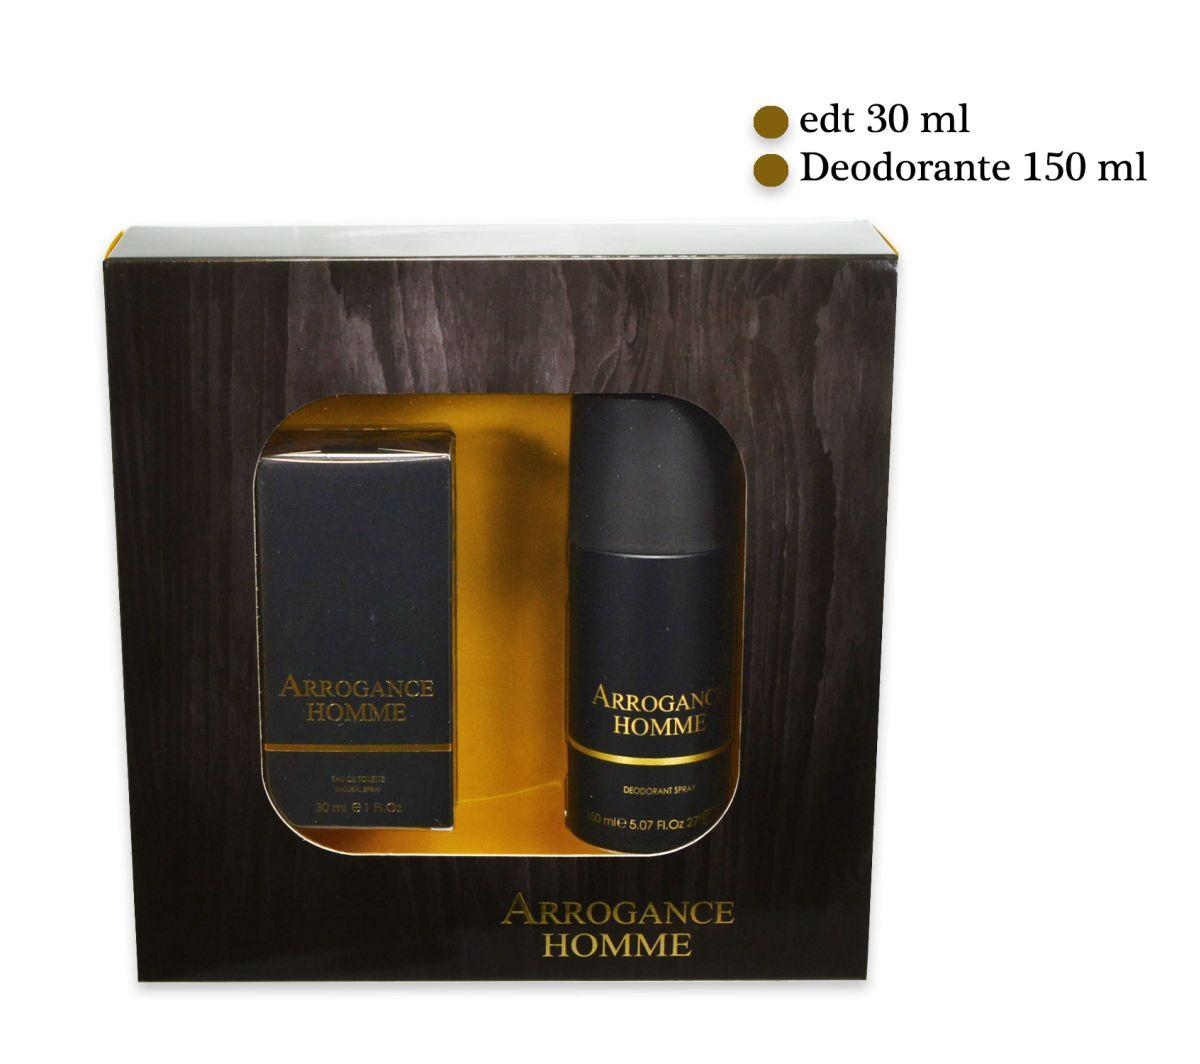 ARROGANCE HOMME KIT CONFEZIONE EDT 30ml DEO SPRAY 150ml